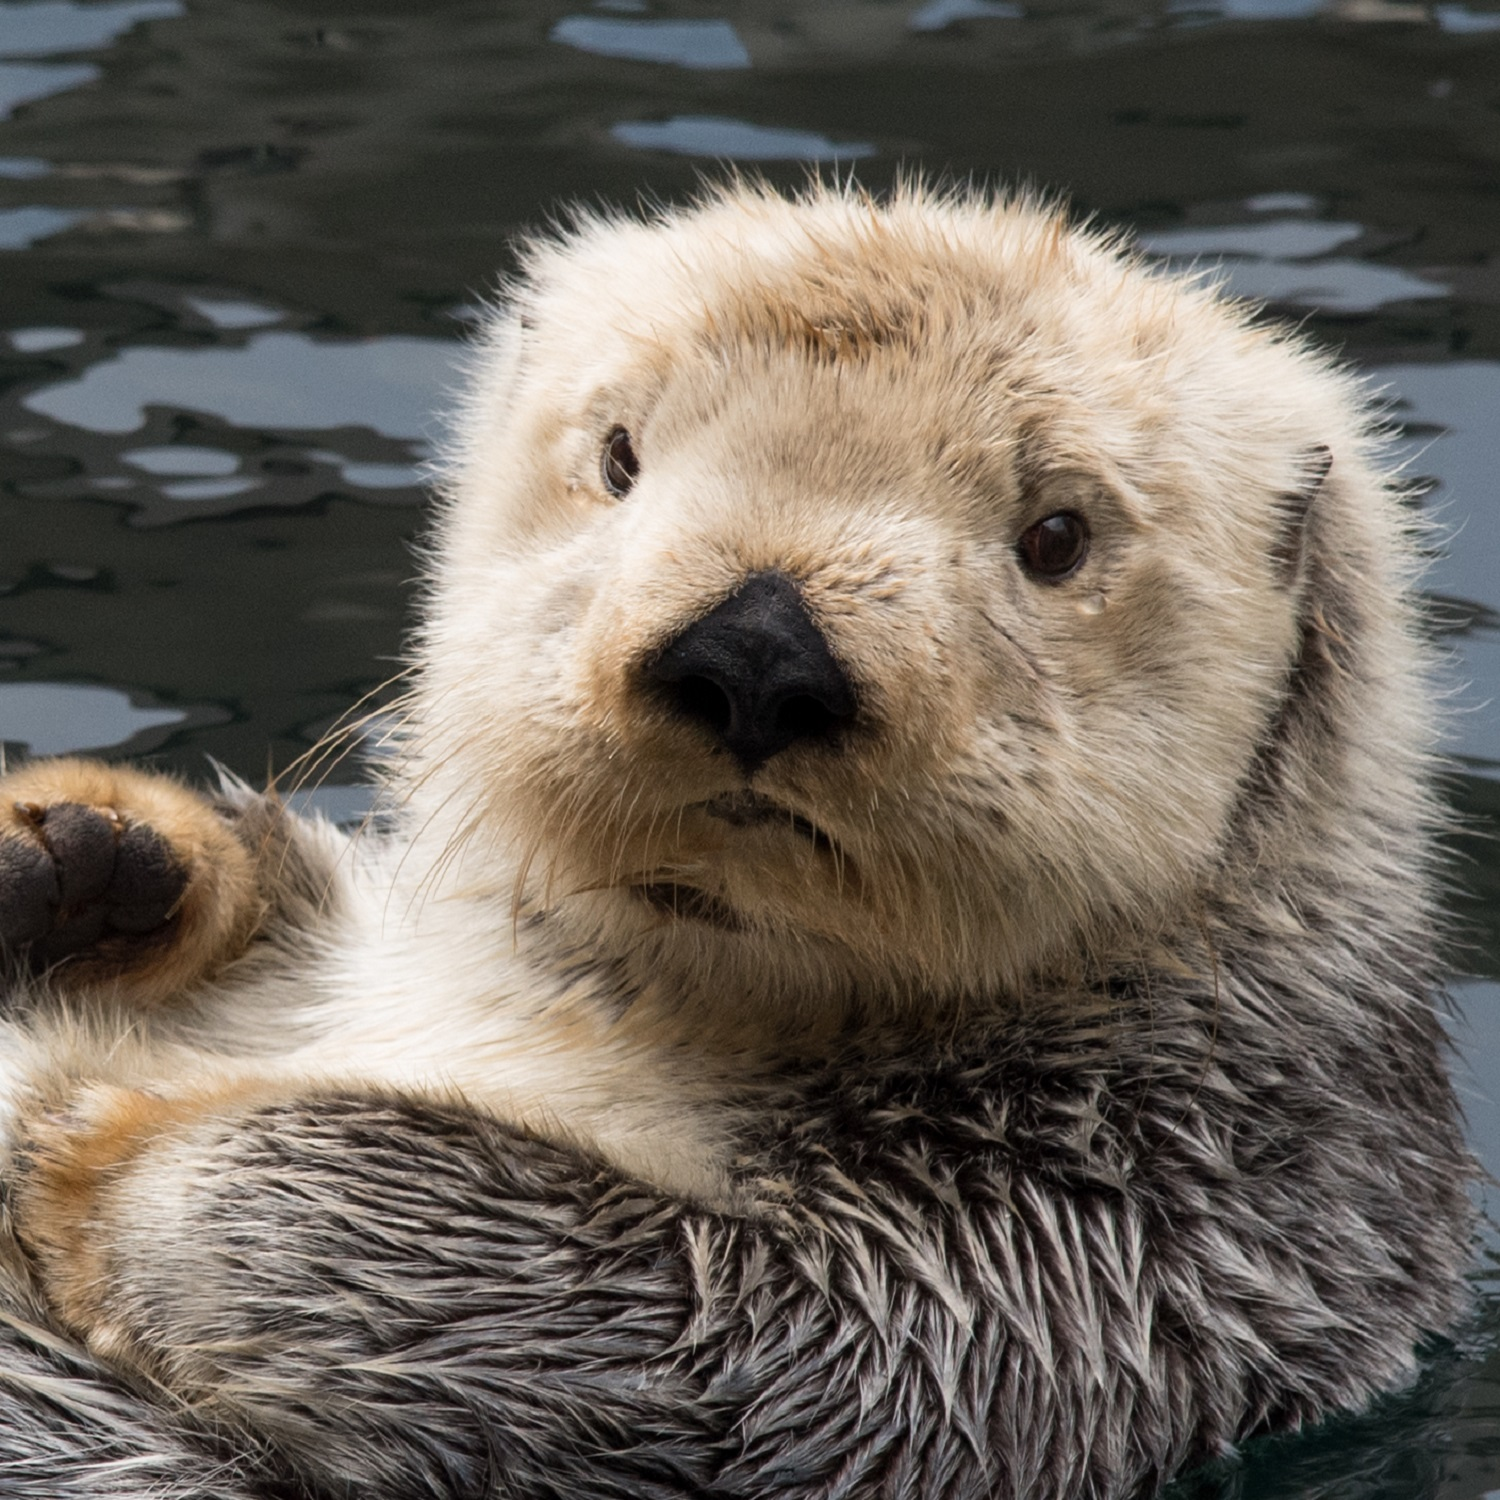 Aniak the sea otter